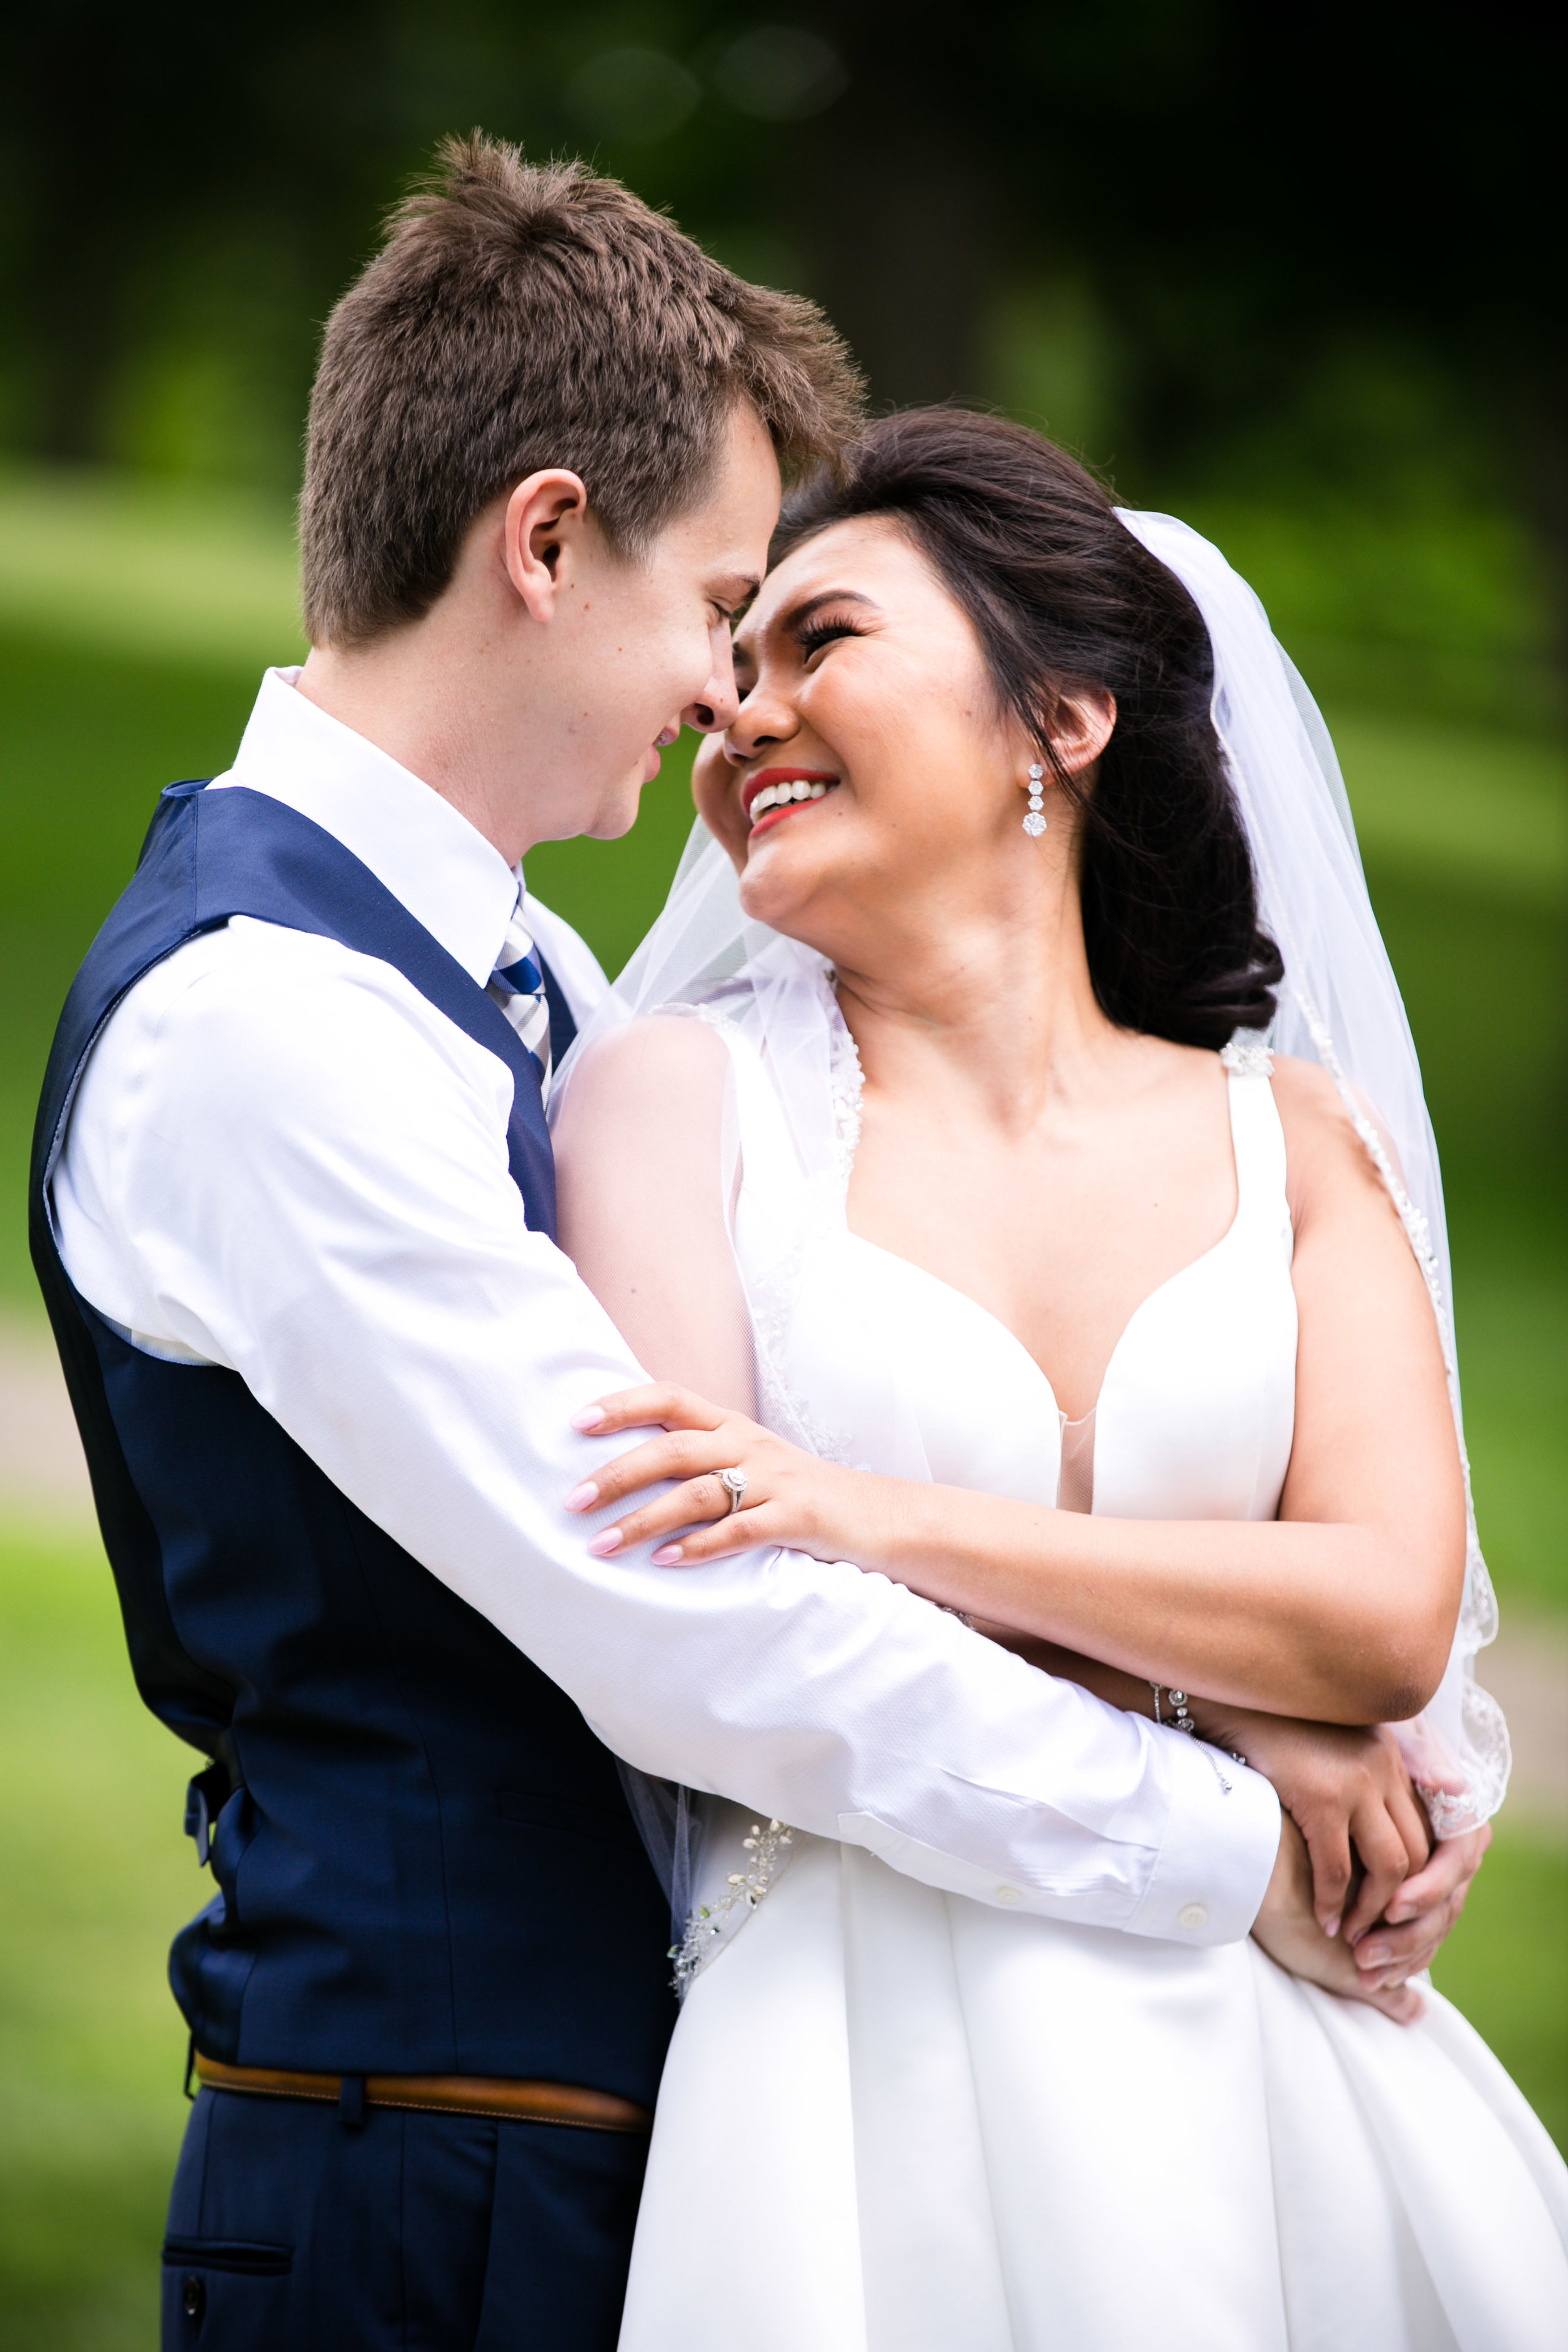 grooms arms wrapped around bride